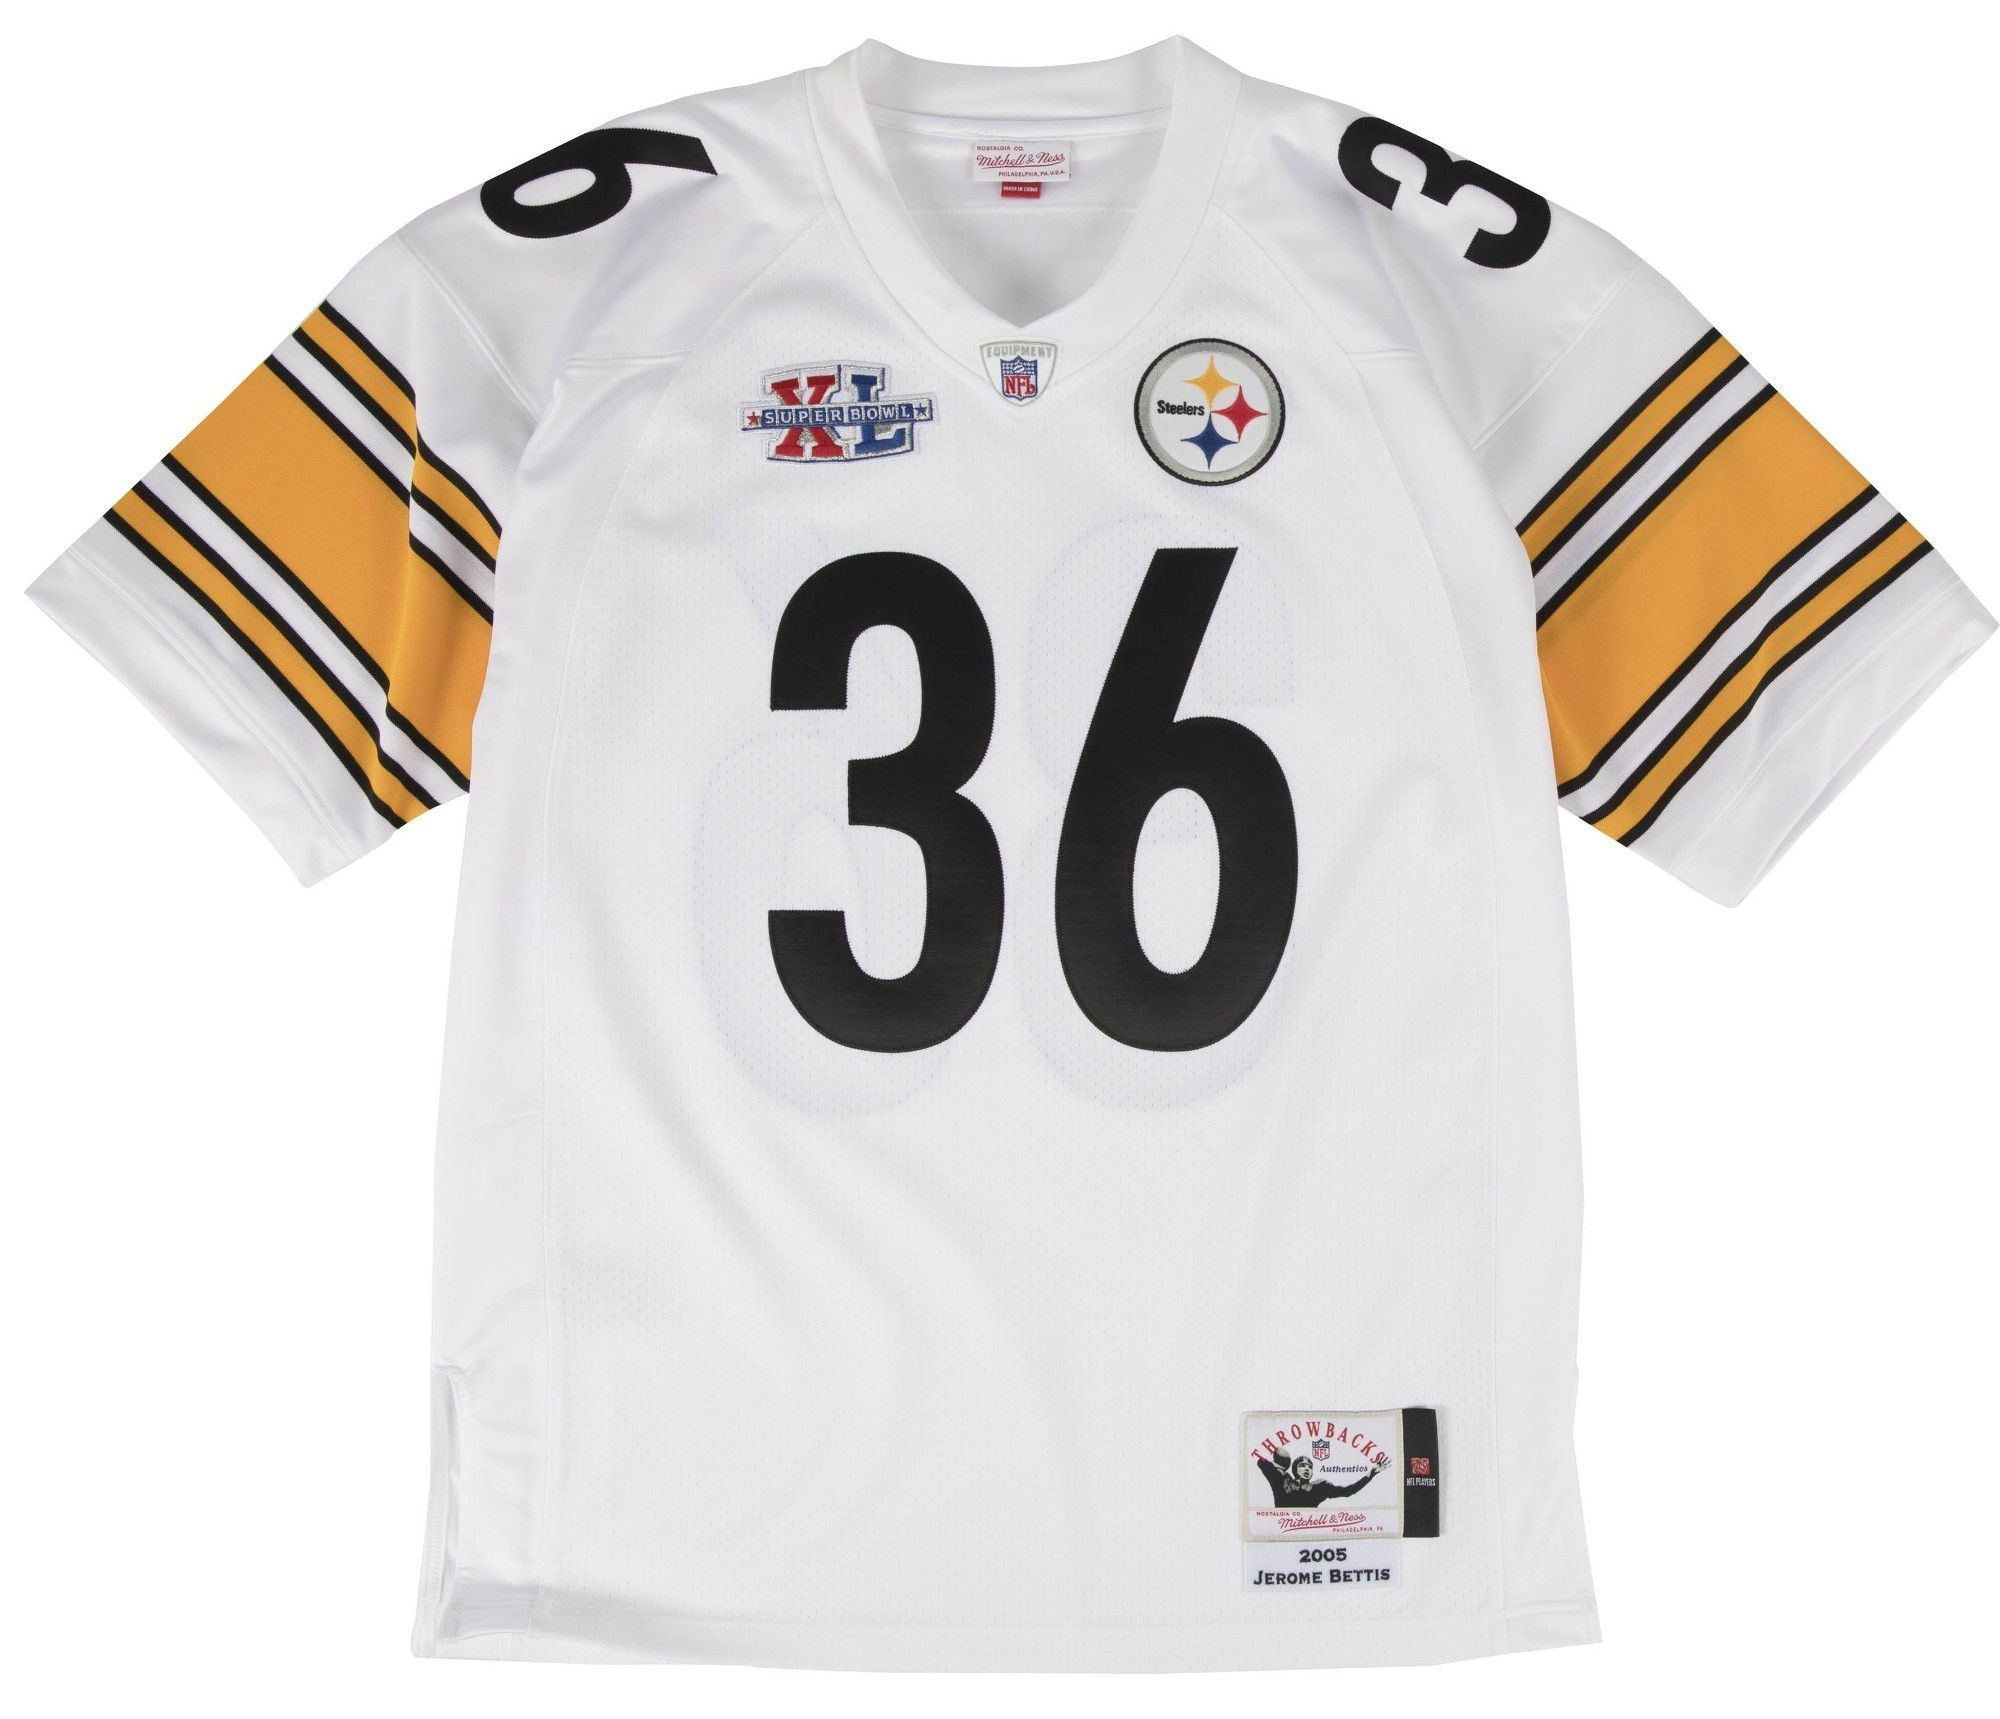 e60a55cf185 Details about Jerome Bettis Pittsburgh Steelers Mitchell   Ness Authentic  2005 White Jersey